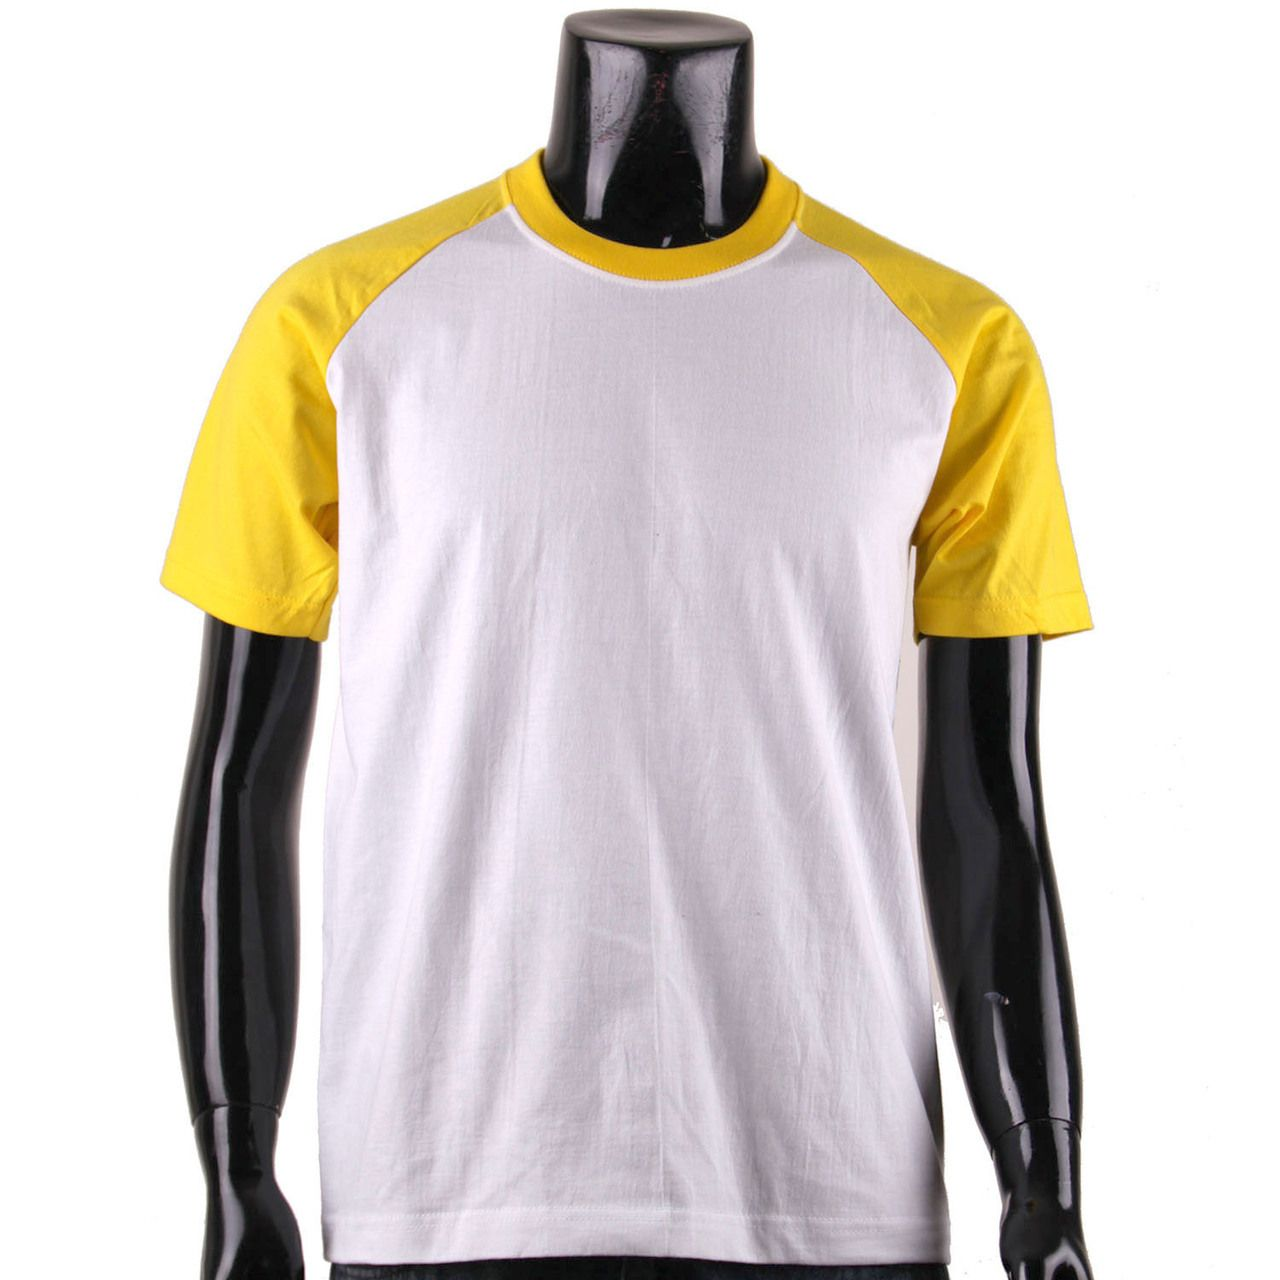 bcpolo - BCPOLO Men's Casual 2 Tone White-Yellow Raglan Shirt Crew ...